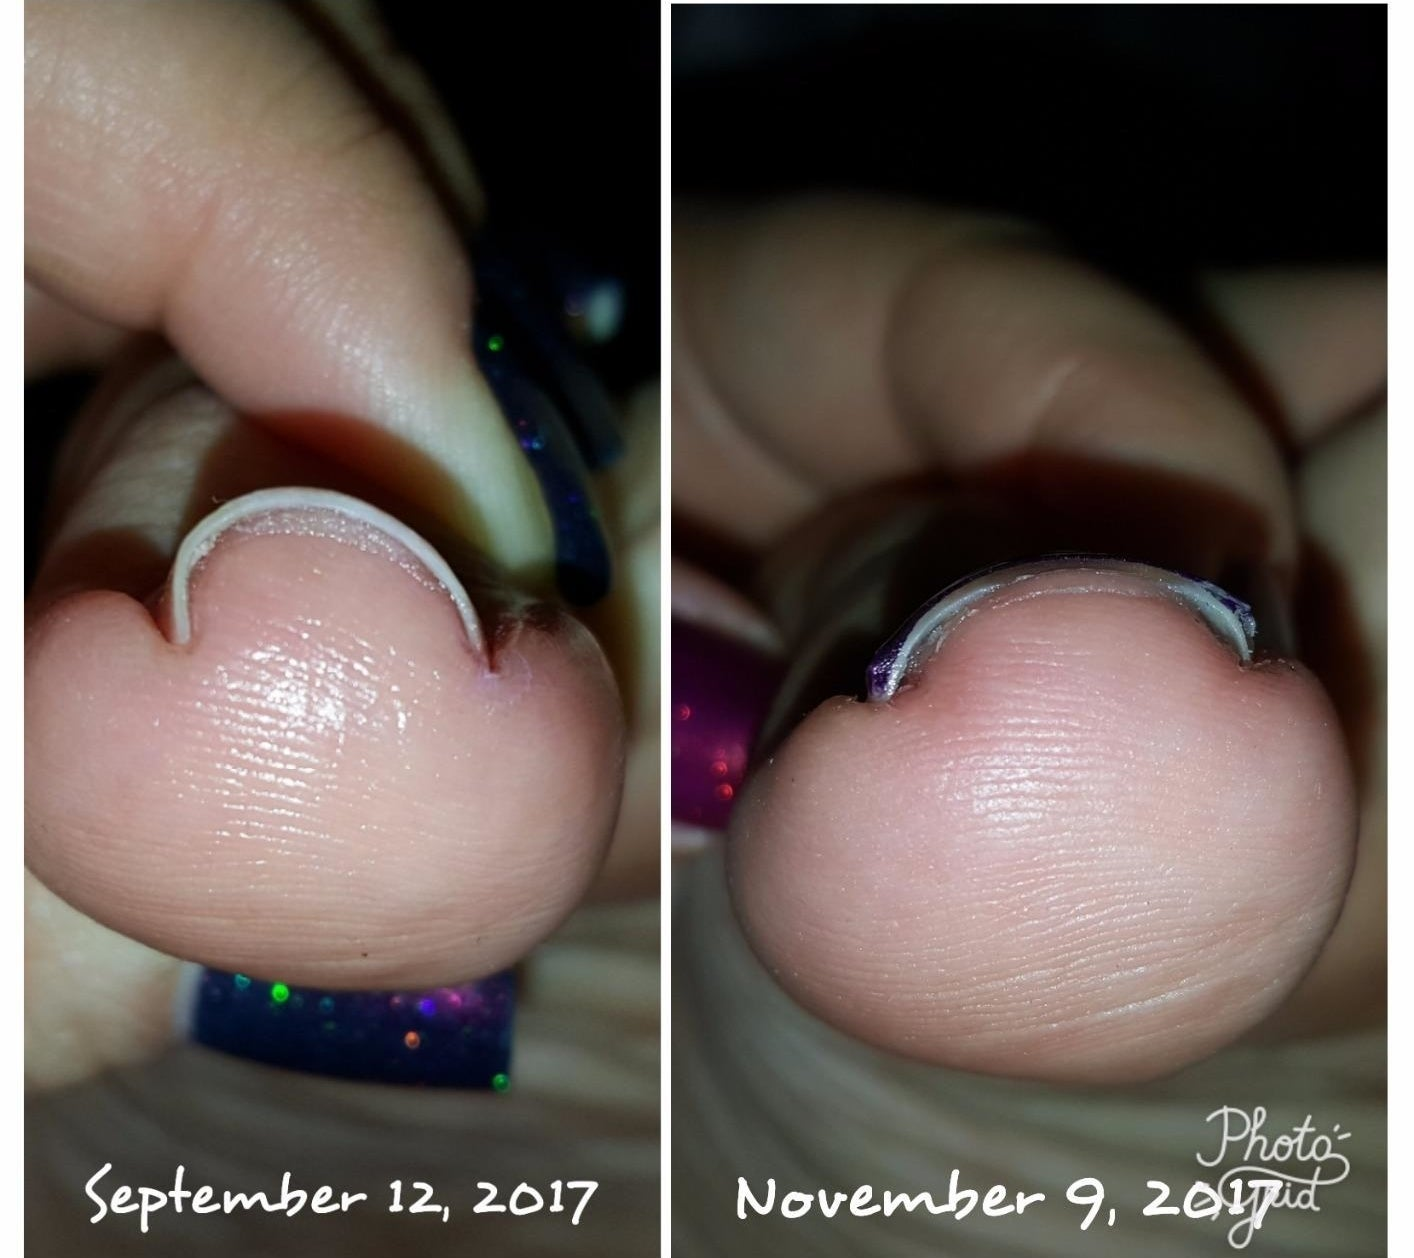 a review image of a bent nail that says september 12 2017 next to another picture of the nail looking much flatter that says november 9 2017